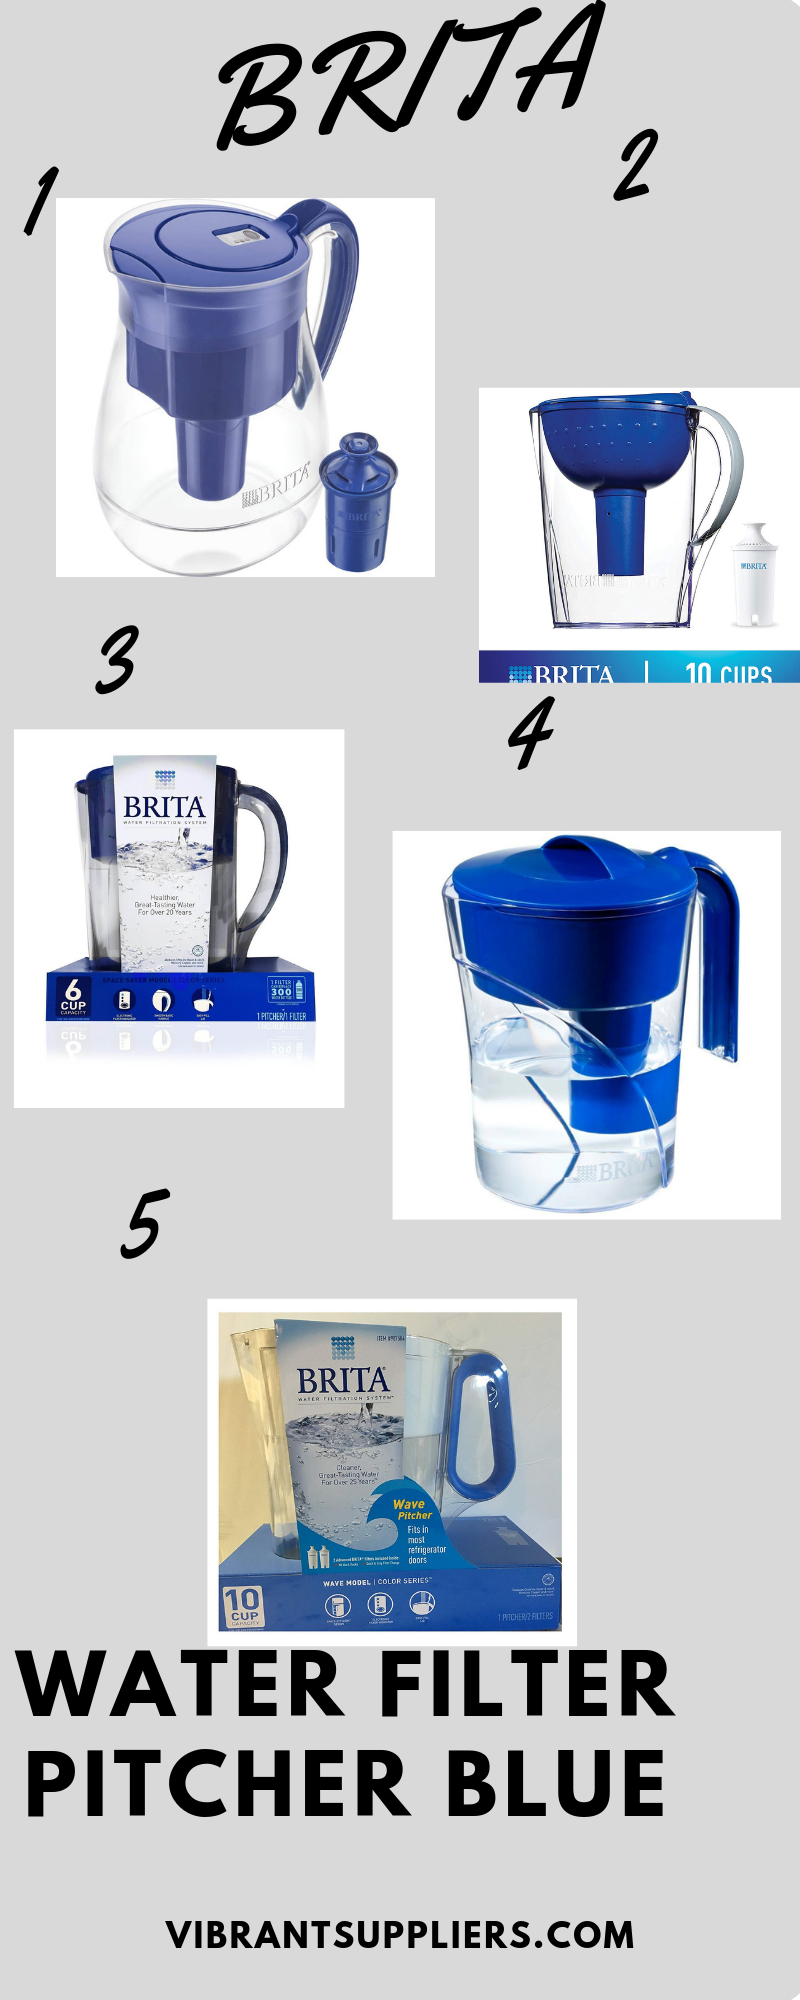 Brita Water Filter Pitcher Blue Brita Water Filter Water Filter